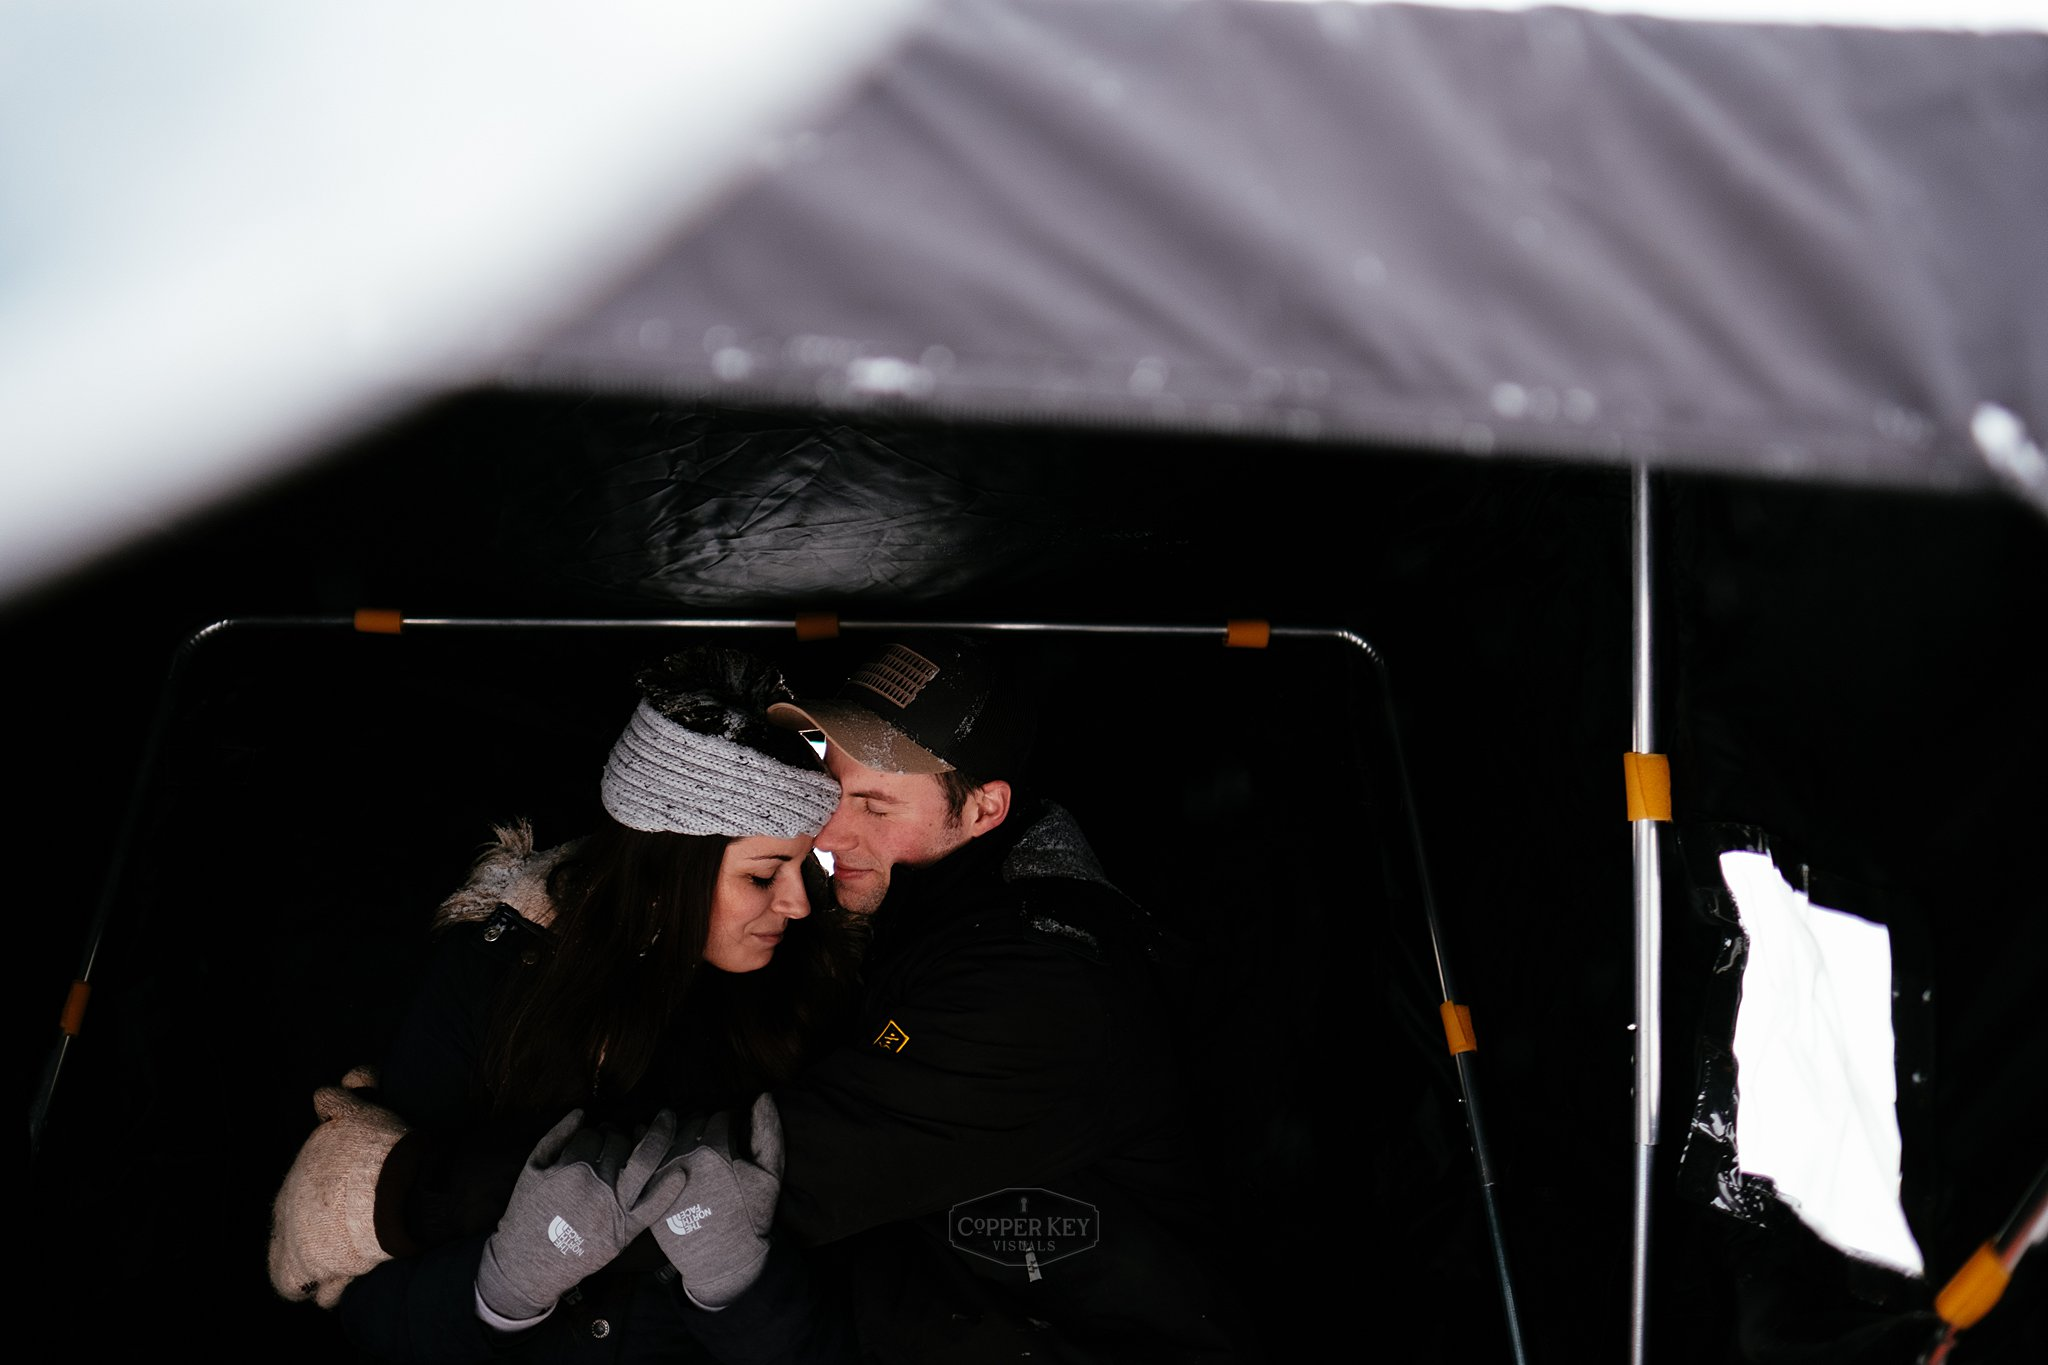 Copper Key Visuals Wisconsin Ice Fishing Engagement Session-10.jpg